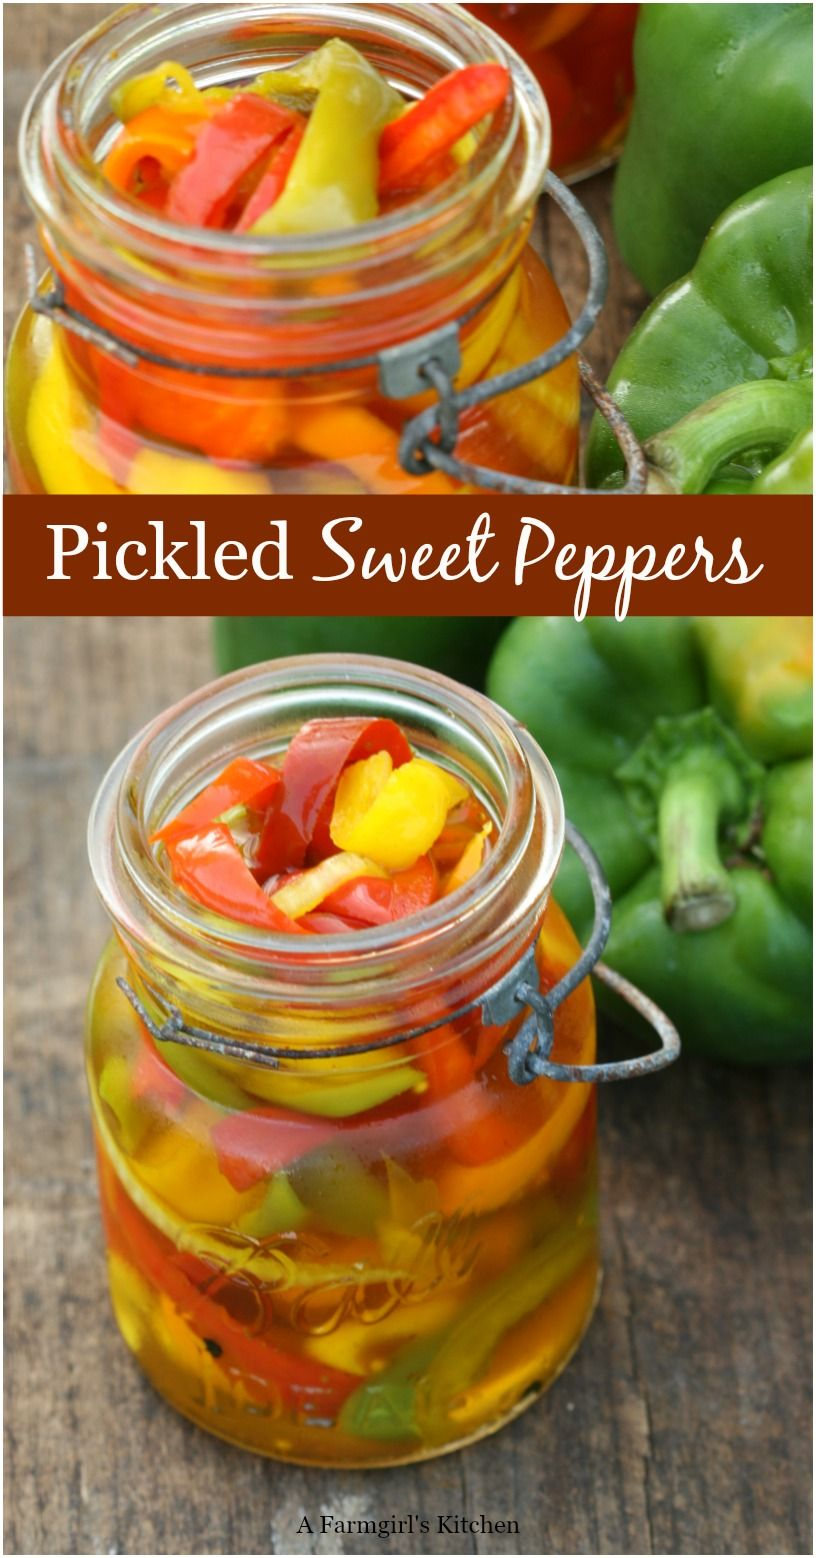 Pickled Sweet Peppers Stuffed Sweet Peppers Pickled Sweet Peppers Stuffed Peppers